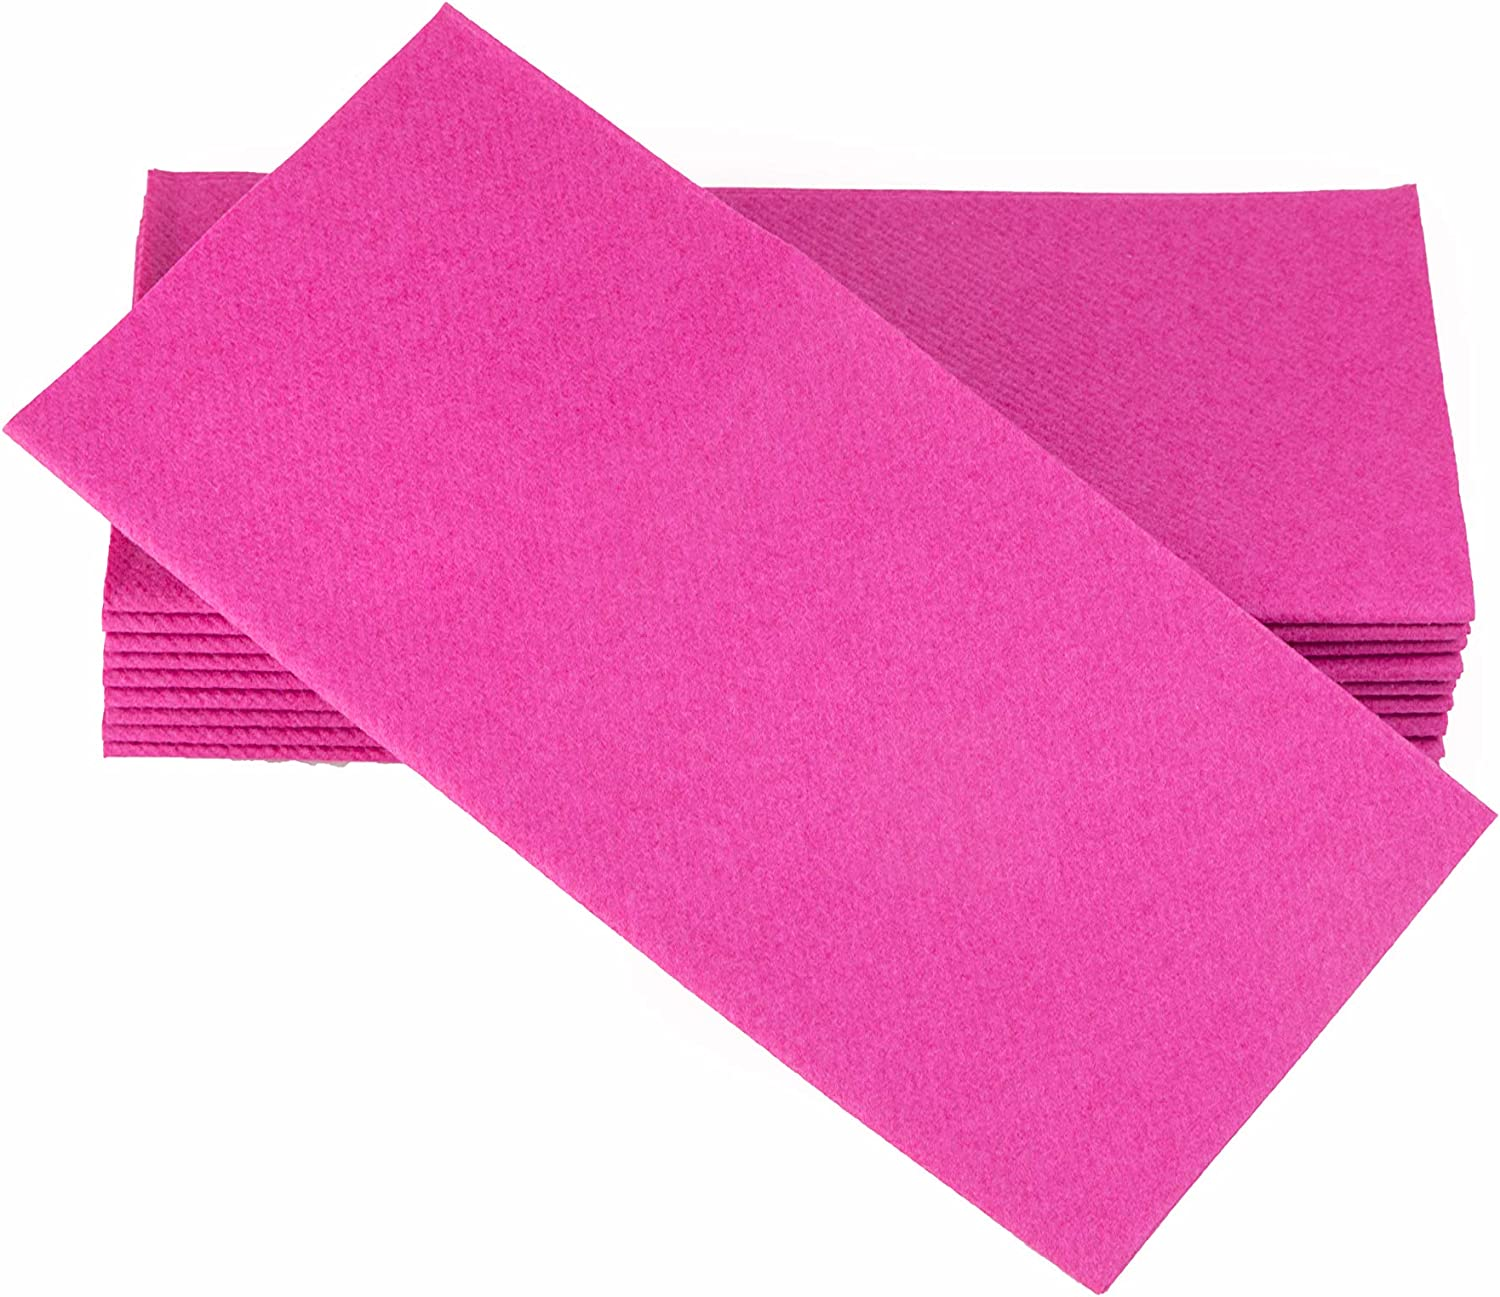 Simulinen Colored Napkins - Decorative Cloth Like & Disposable, Dinner Napkins - Magenta - Soft, Absorbent & Durable - 16